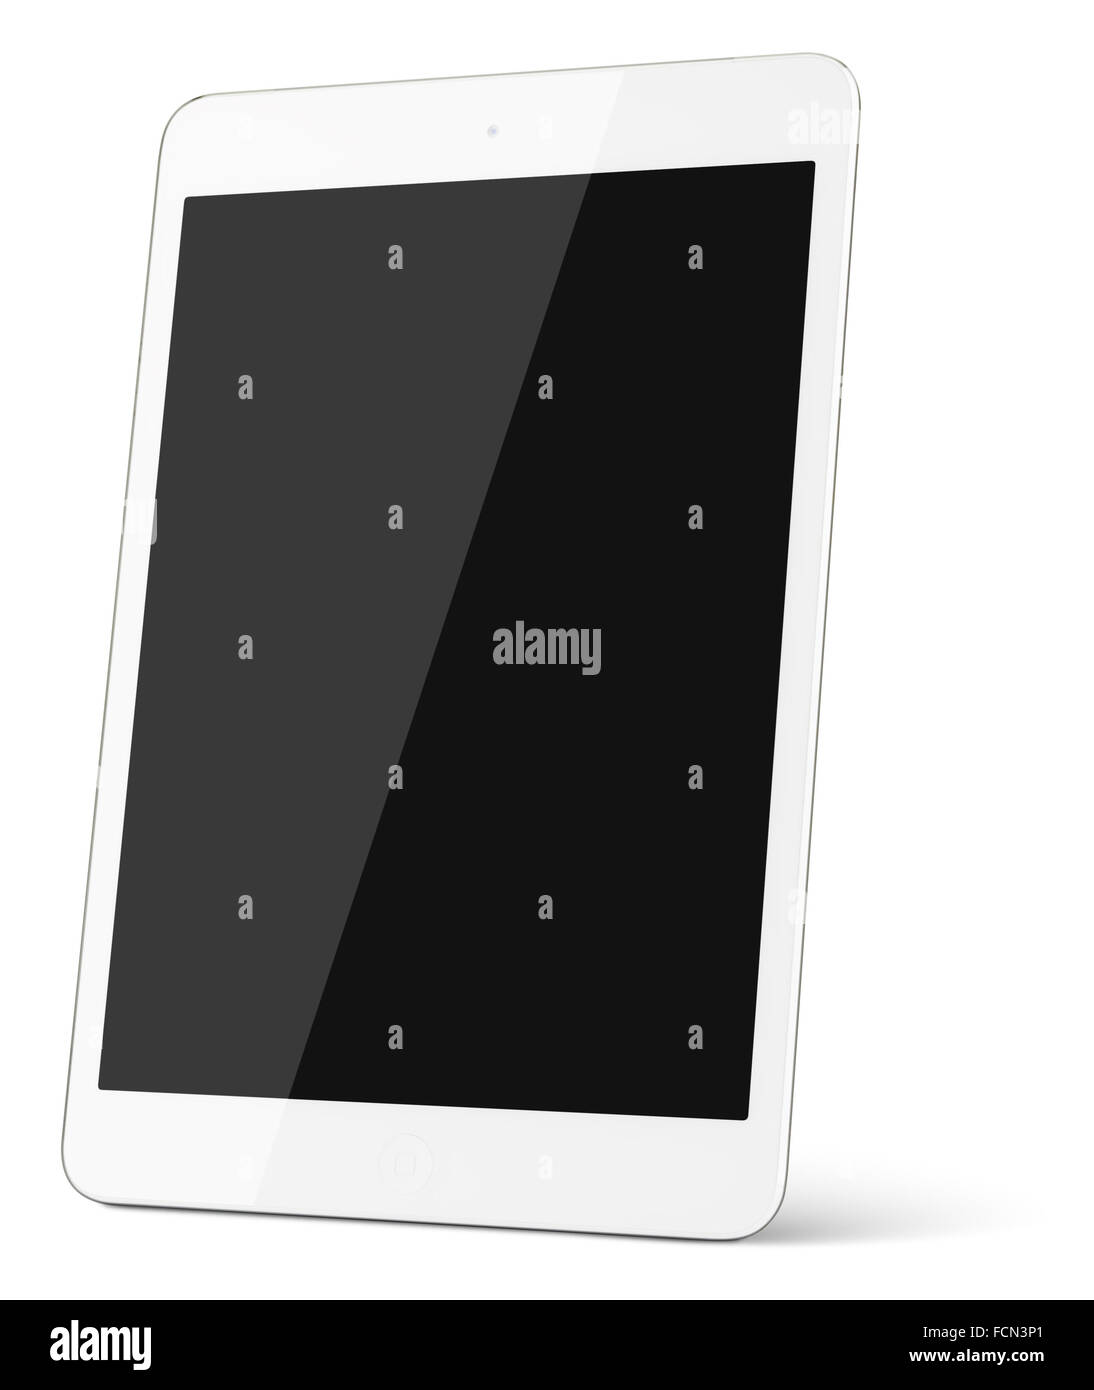 White tablet computer isolated on white background. contains clipping paths - Stock Image